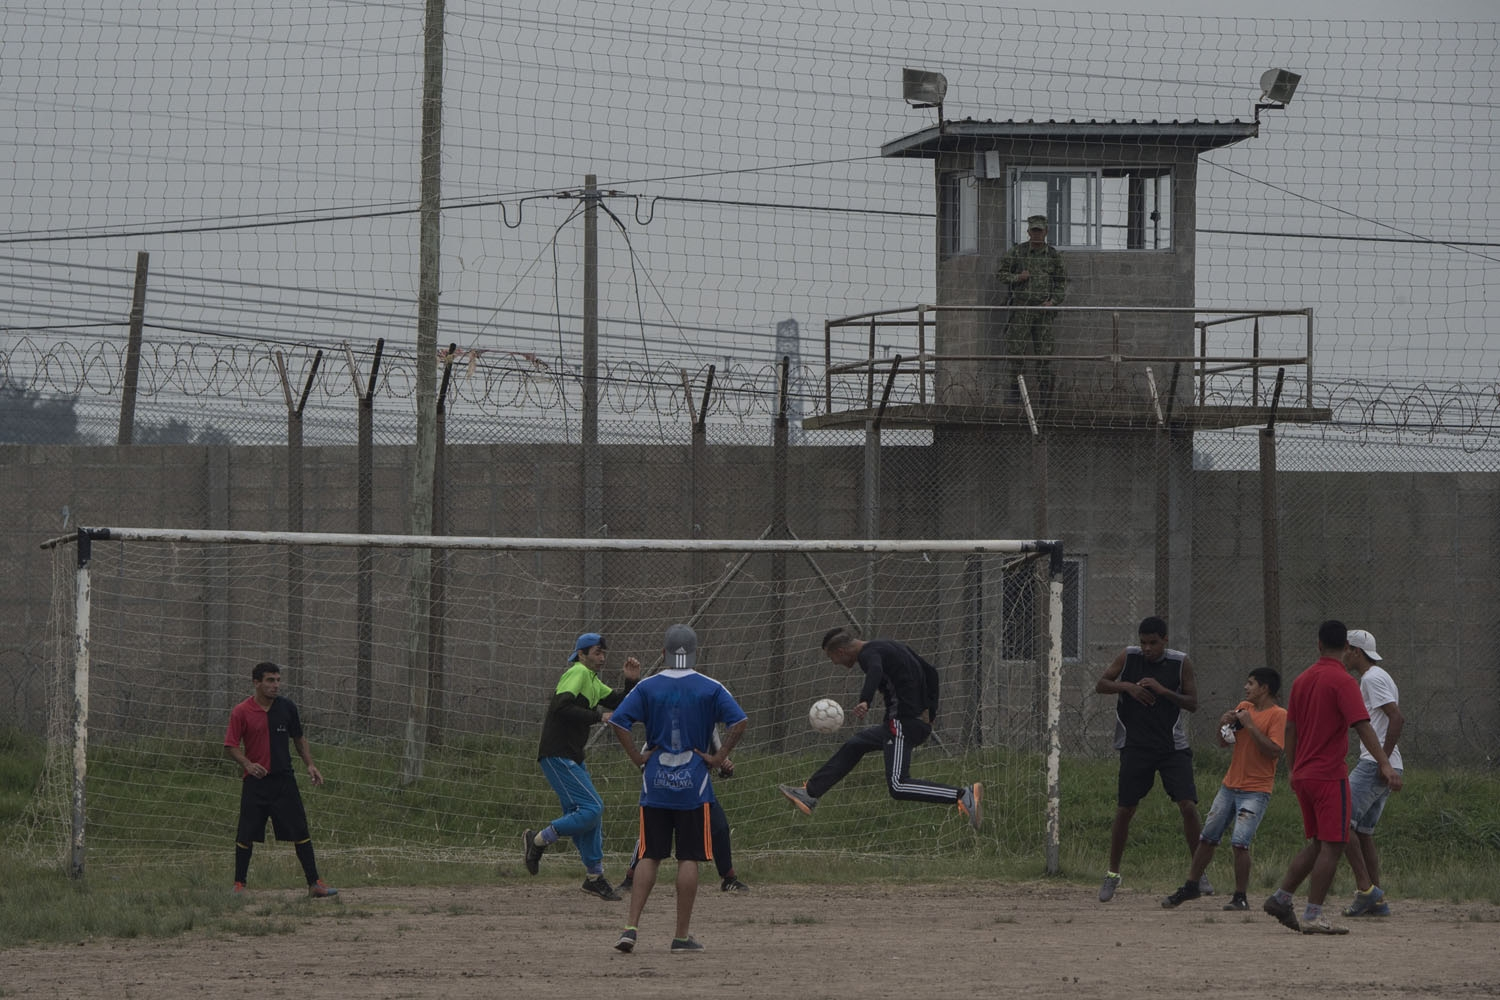 Inmates play soccer at the Punta de Rieles prison in Montevideo on May 05, 2016